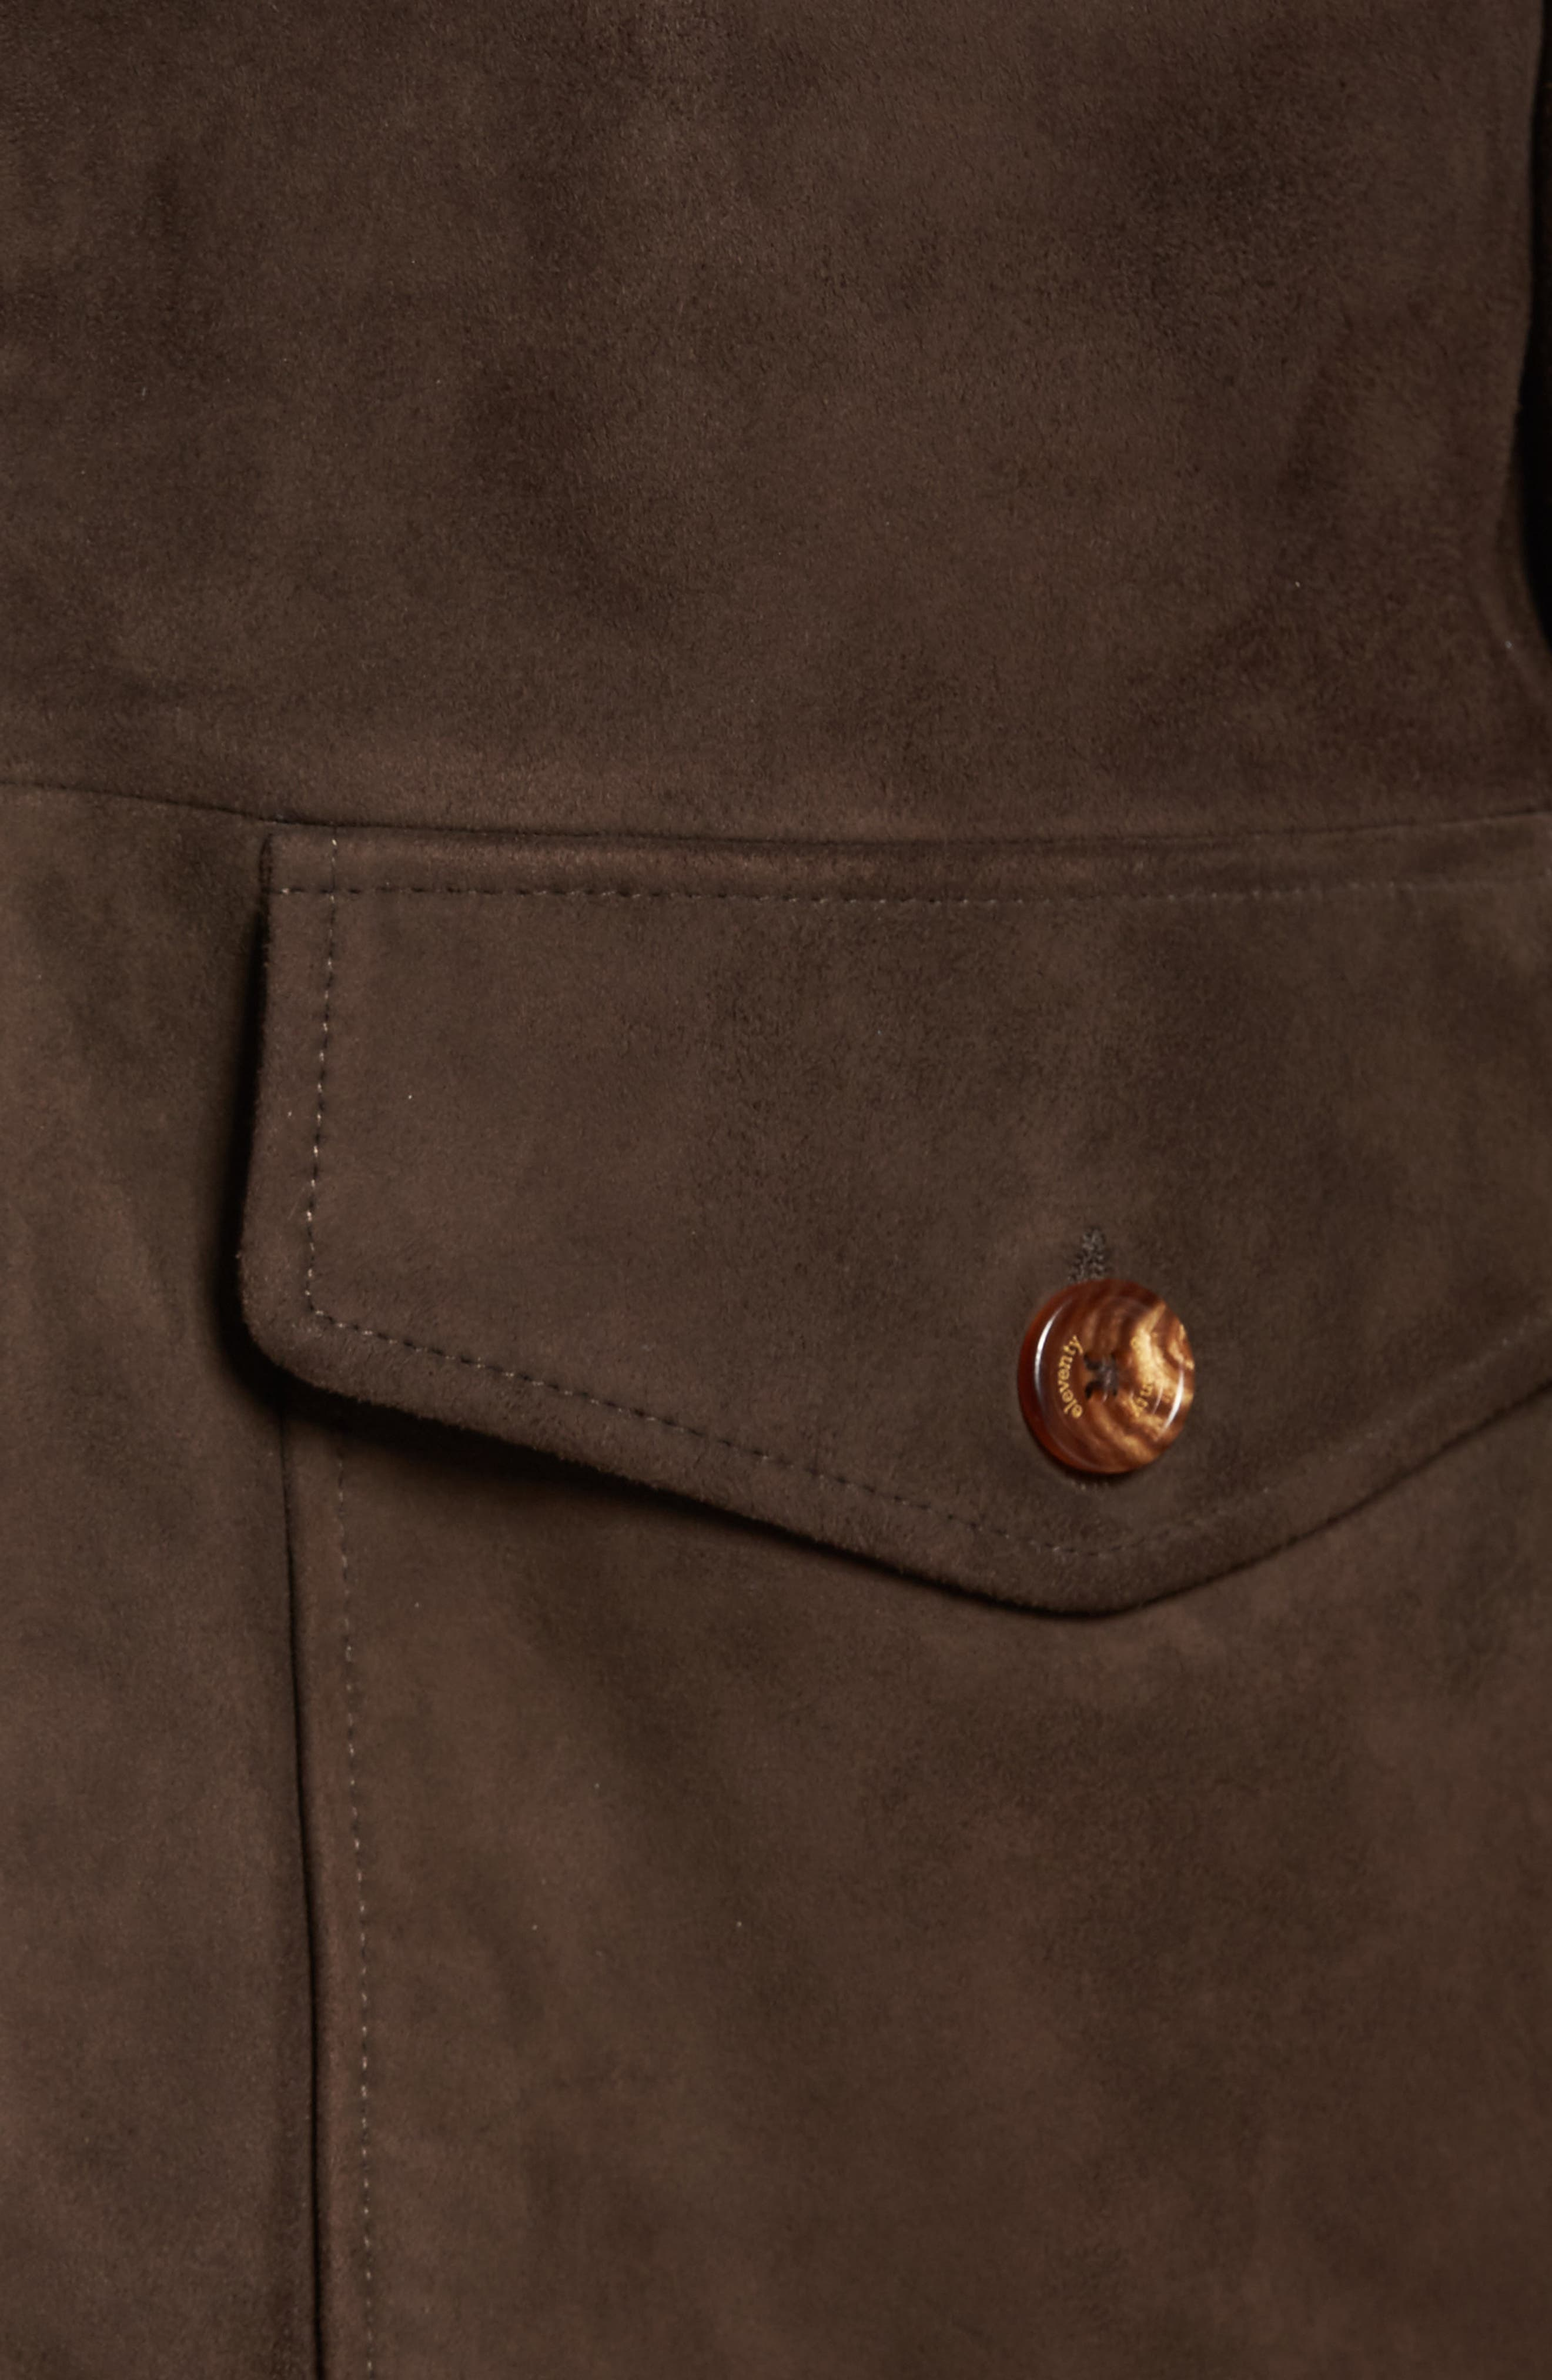 Suede Jacket,                             Alternate thumbnail 6, color,                             Chocolate Brown